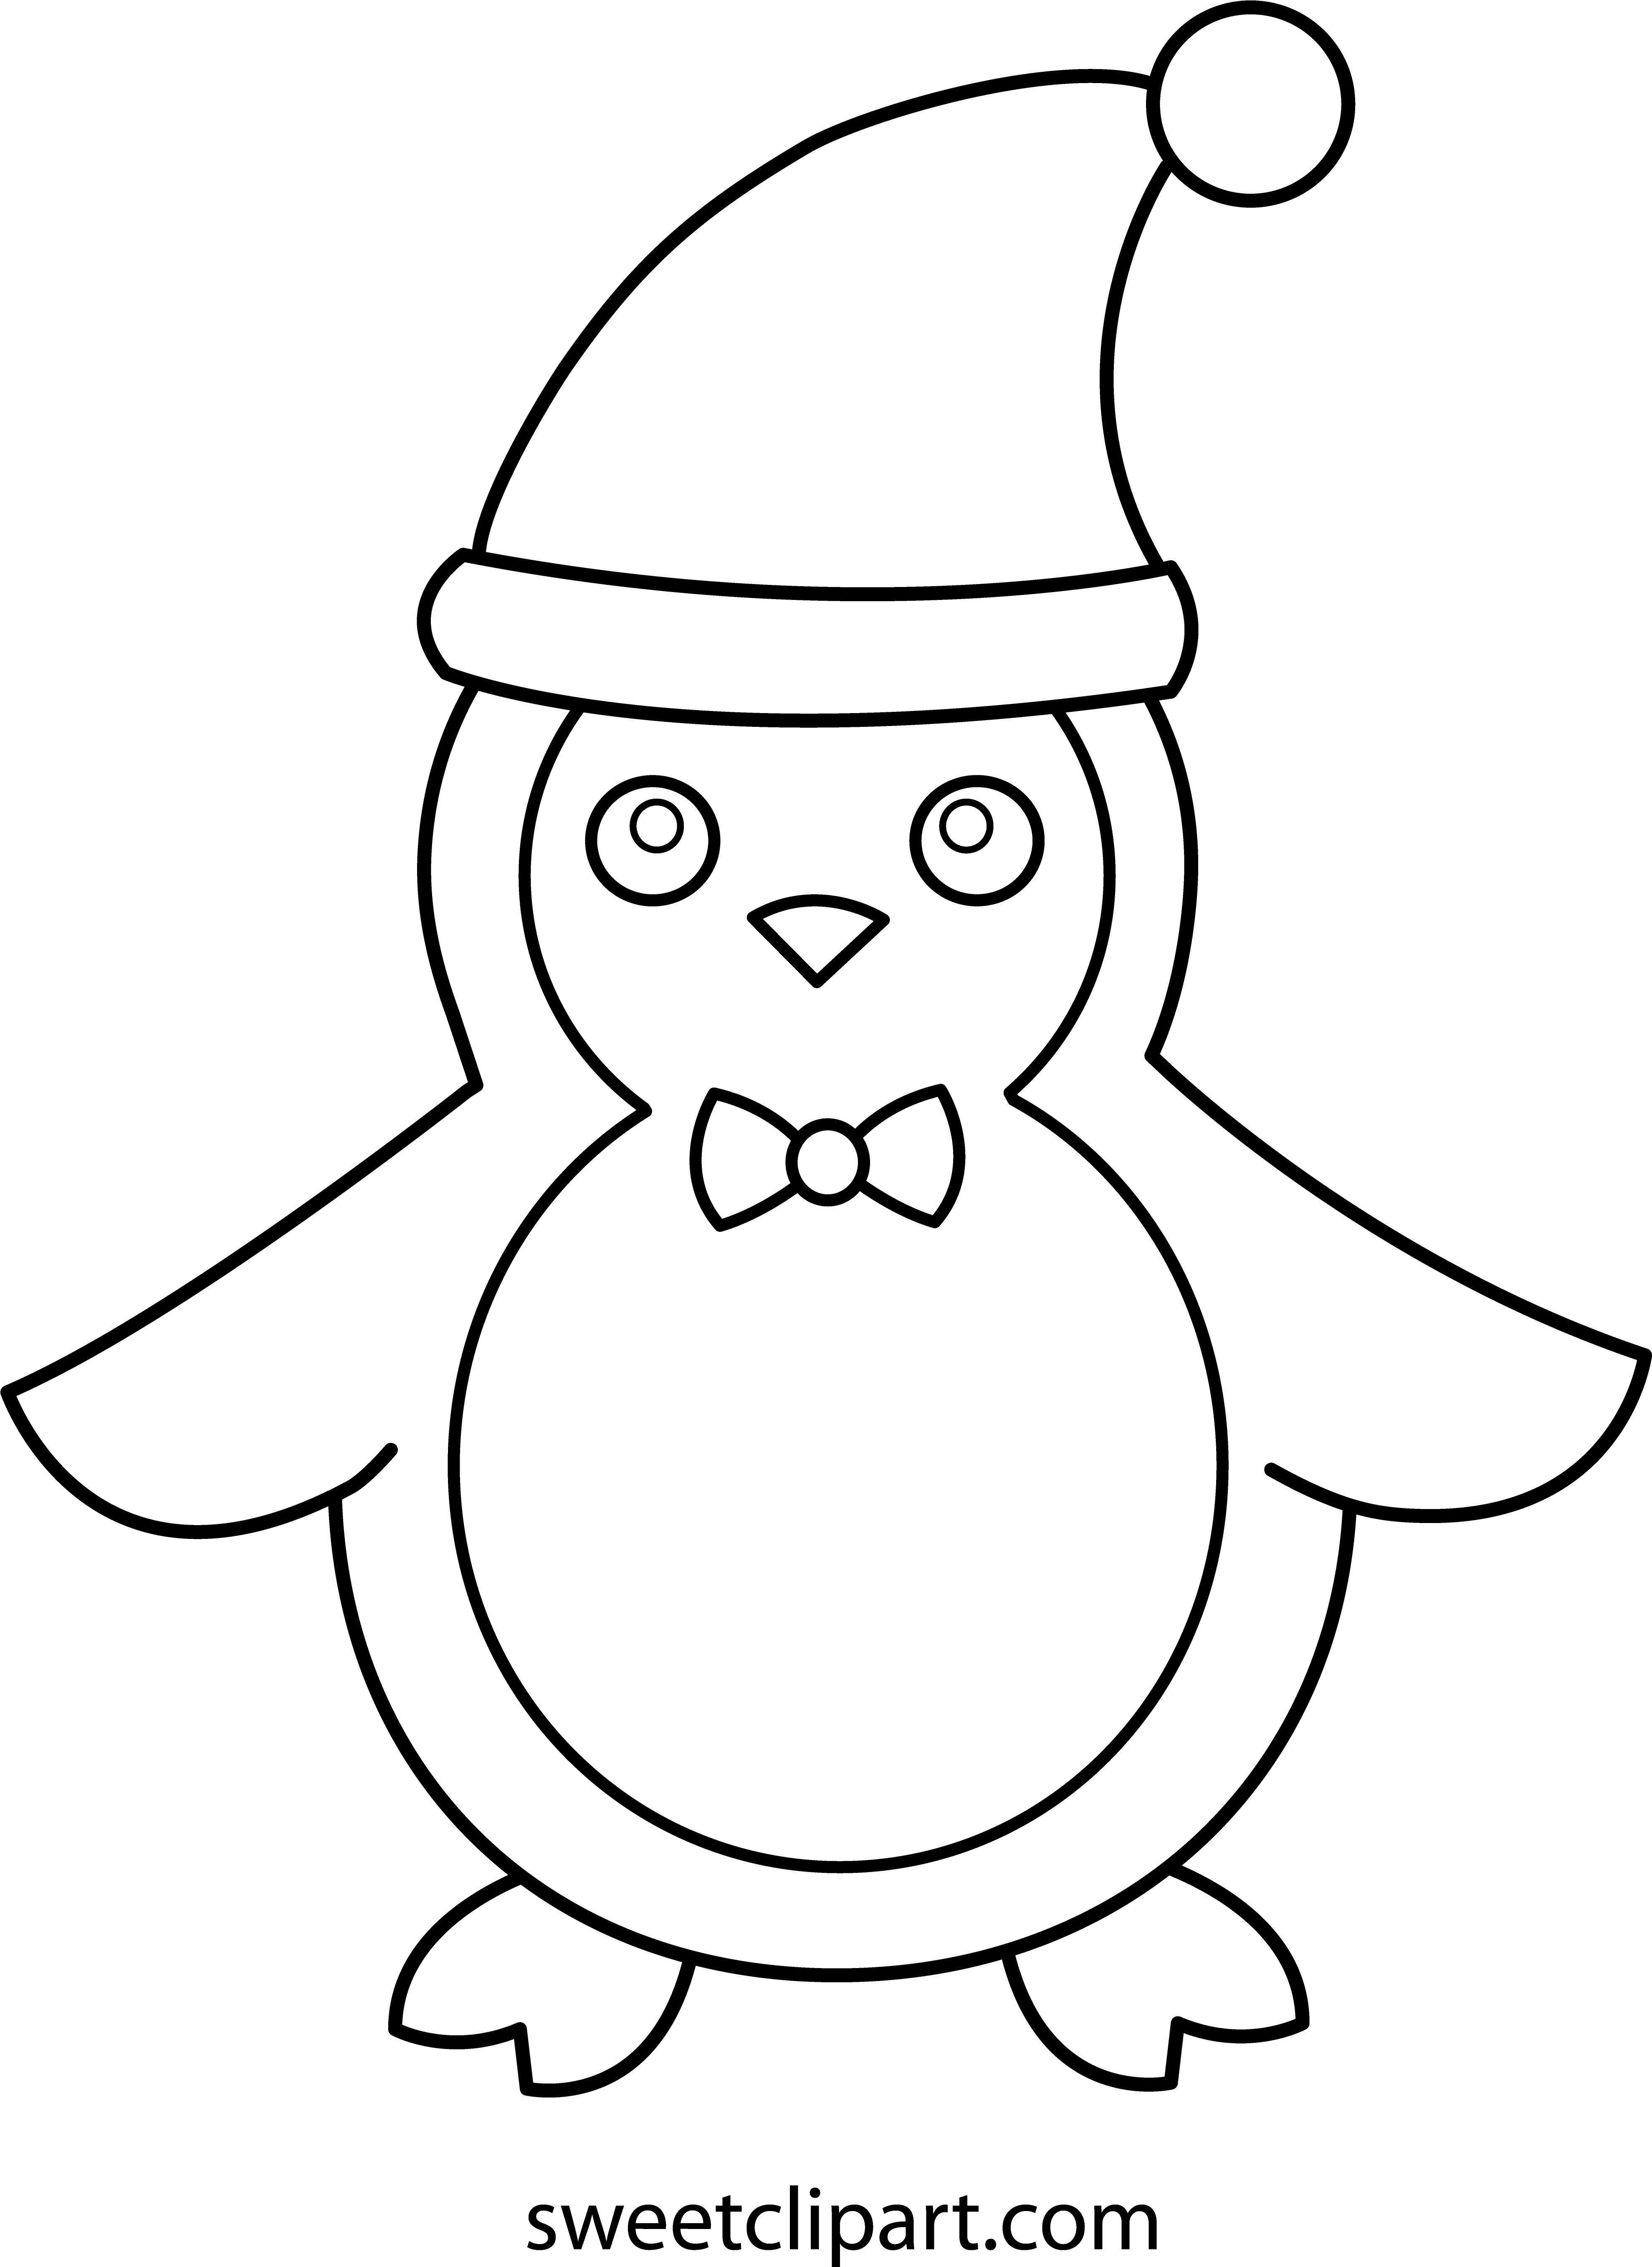 Christmas Penguin Coloring Pages – AZ Coloring Pages (With images ... | 5430x3957